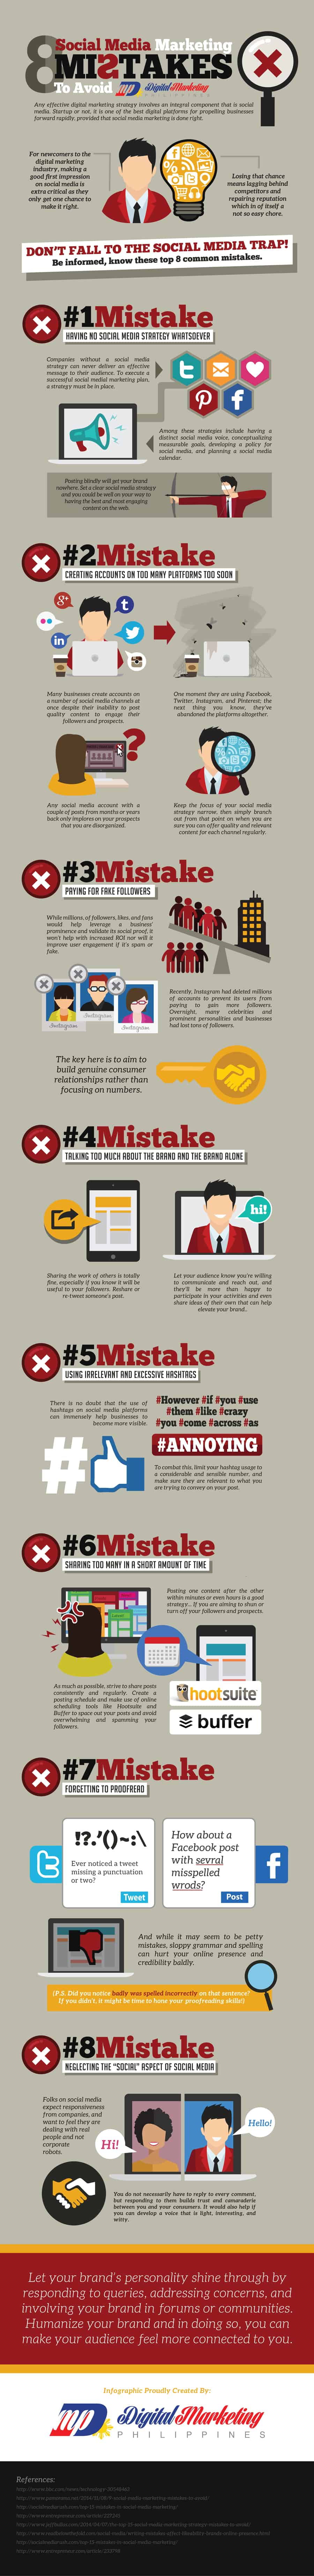 marketing mistakes Marketing consultant adam hampson discusses 10 common email marketing  mistakes that can damage your campaigns and provides tips on.